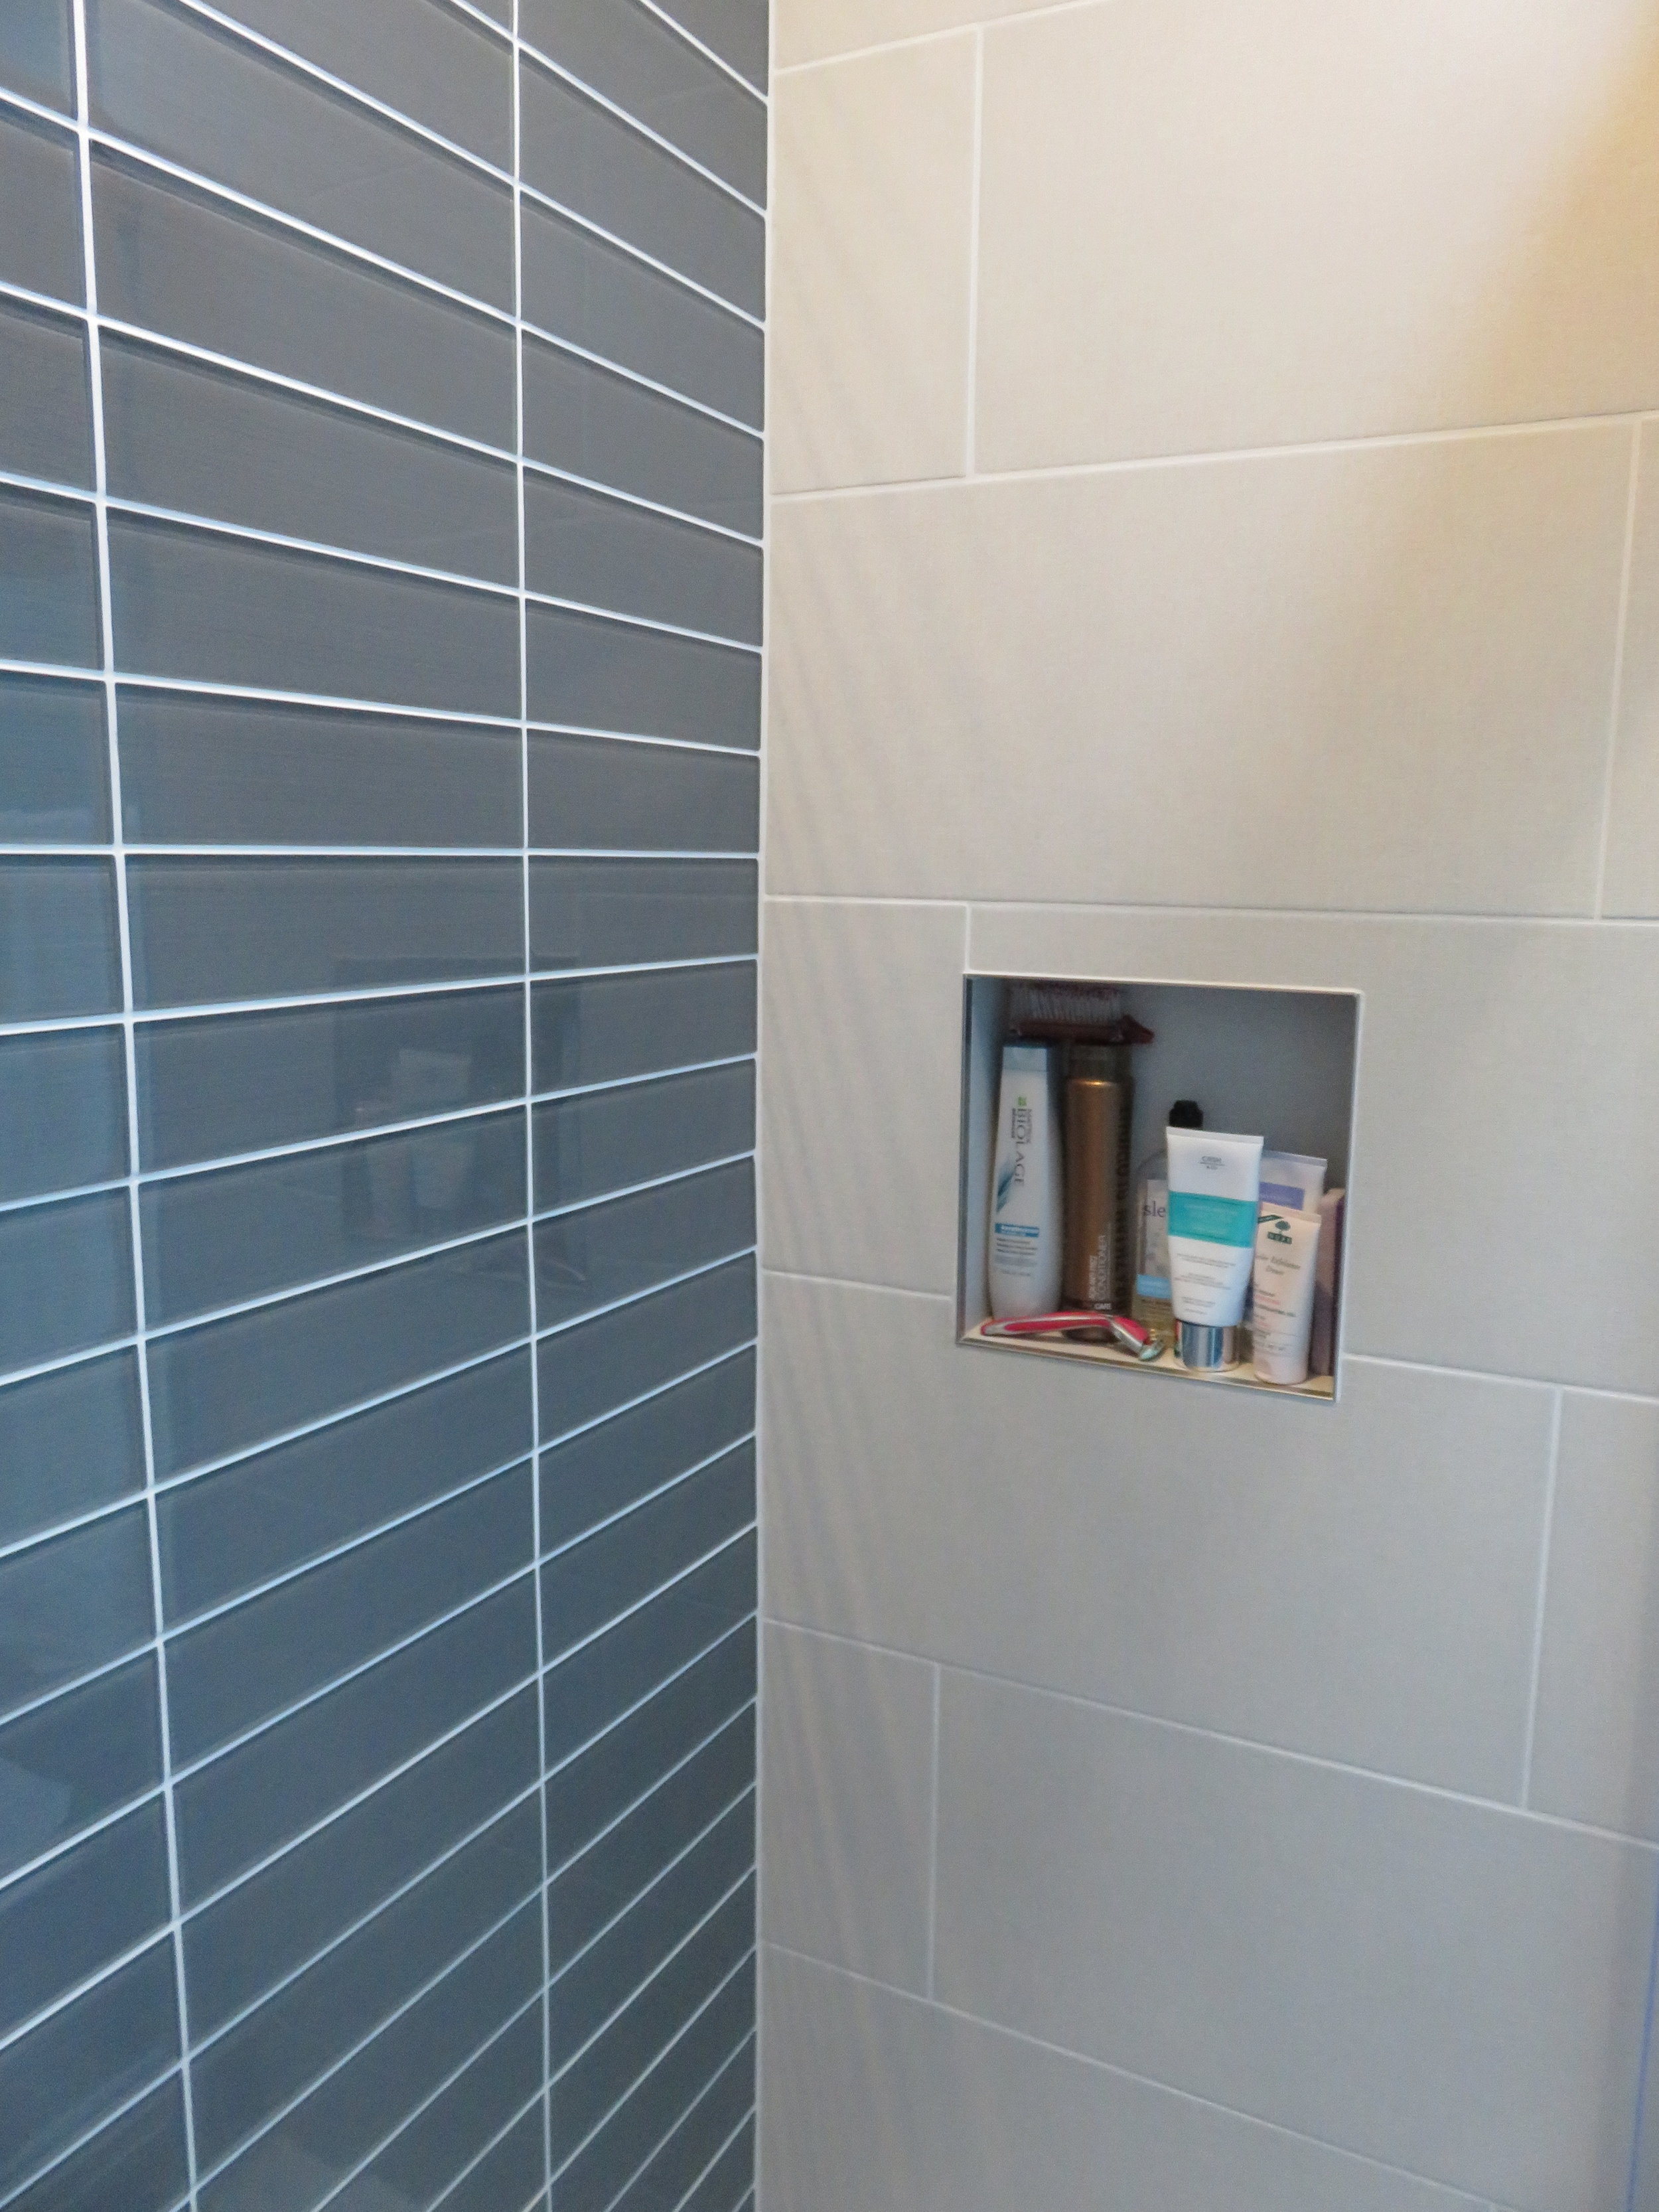 A closer look a the tile - one wall in charcoal glass and the other in ceramic with a criss cross design.